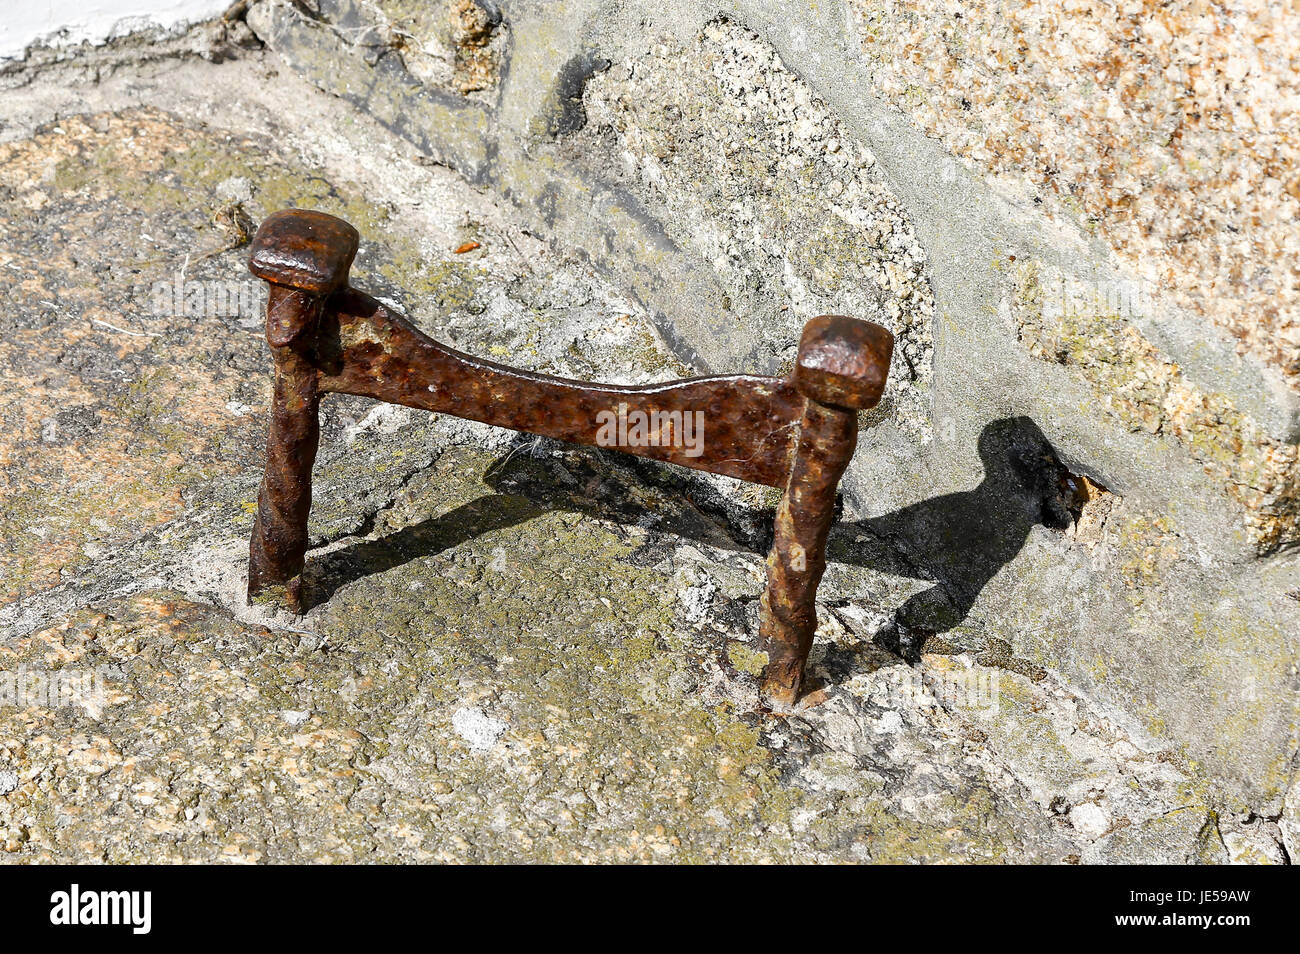 An old rusty cast iron boot scraper - Stock Image